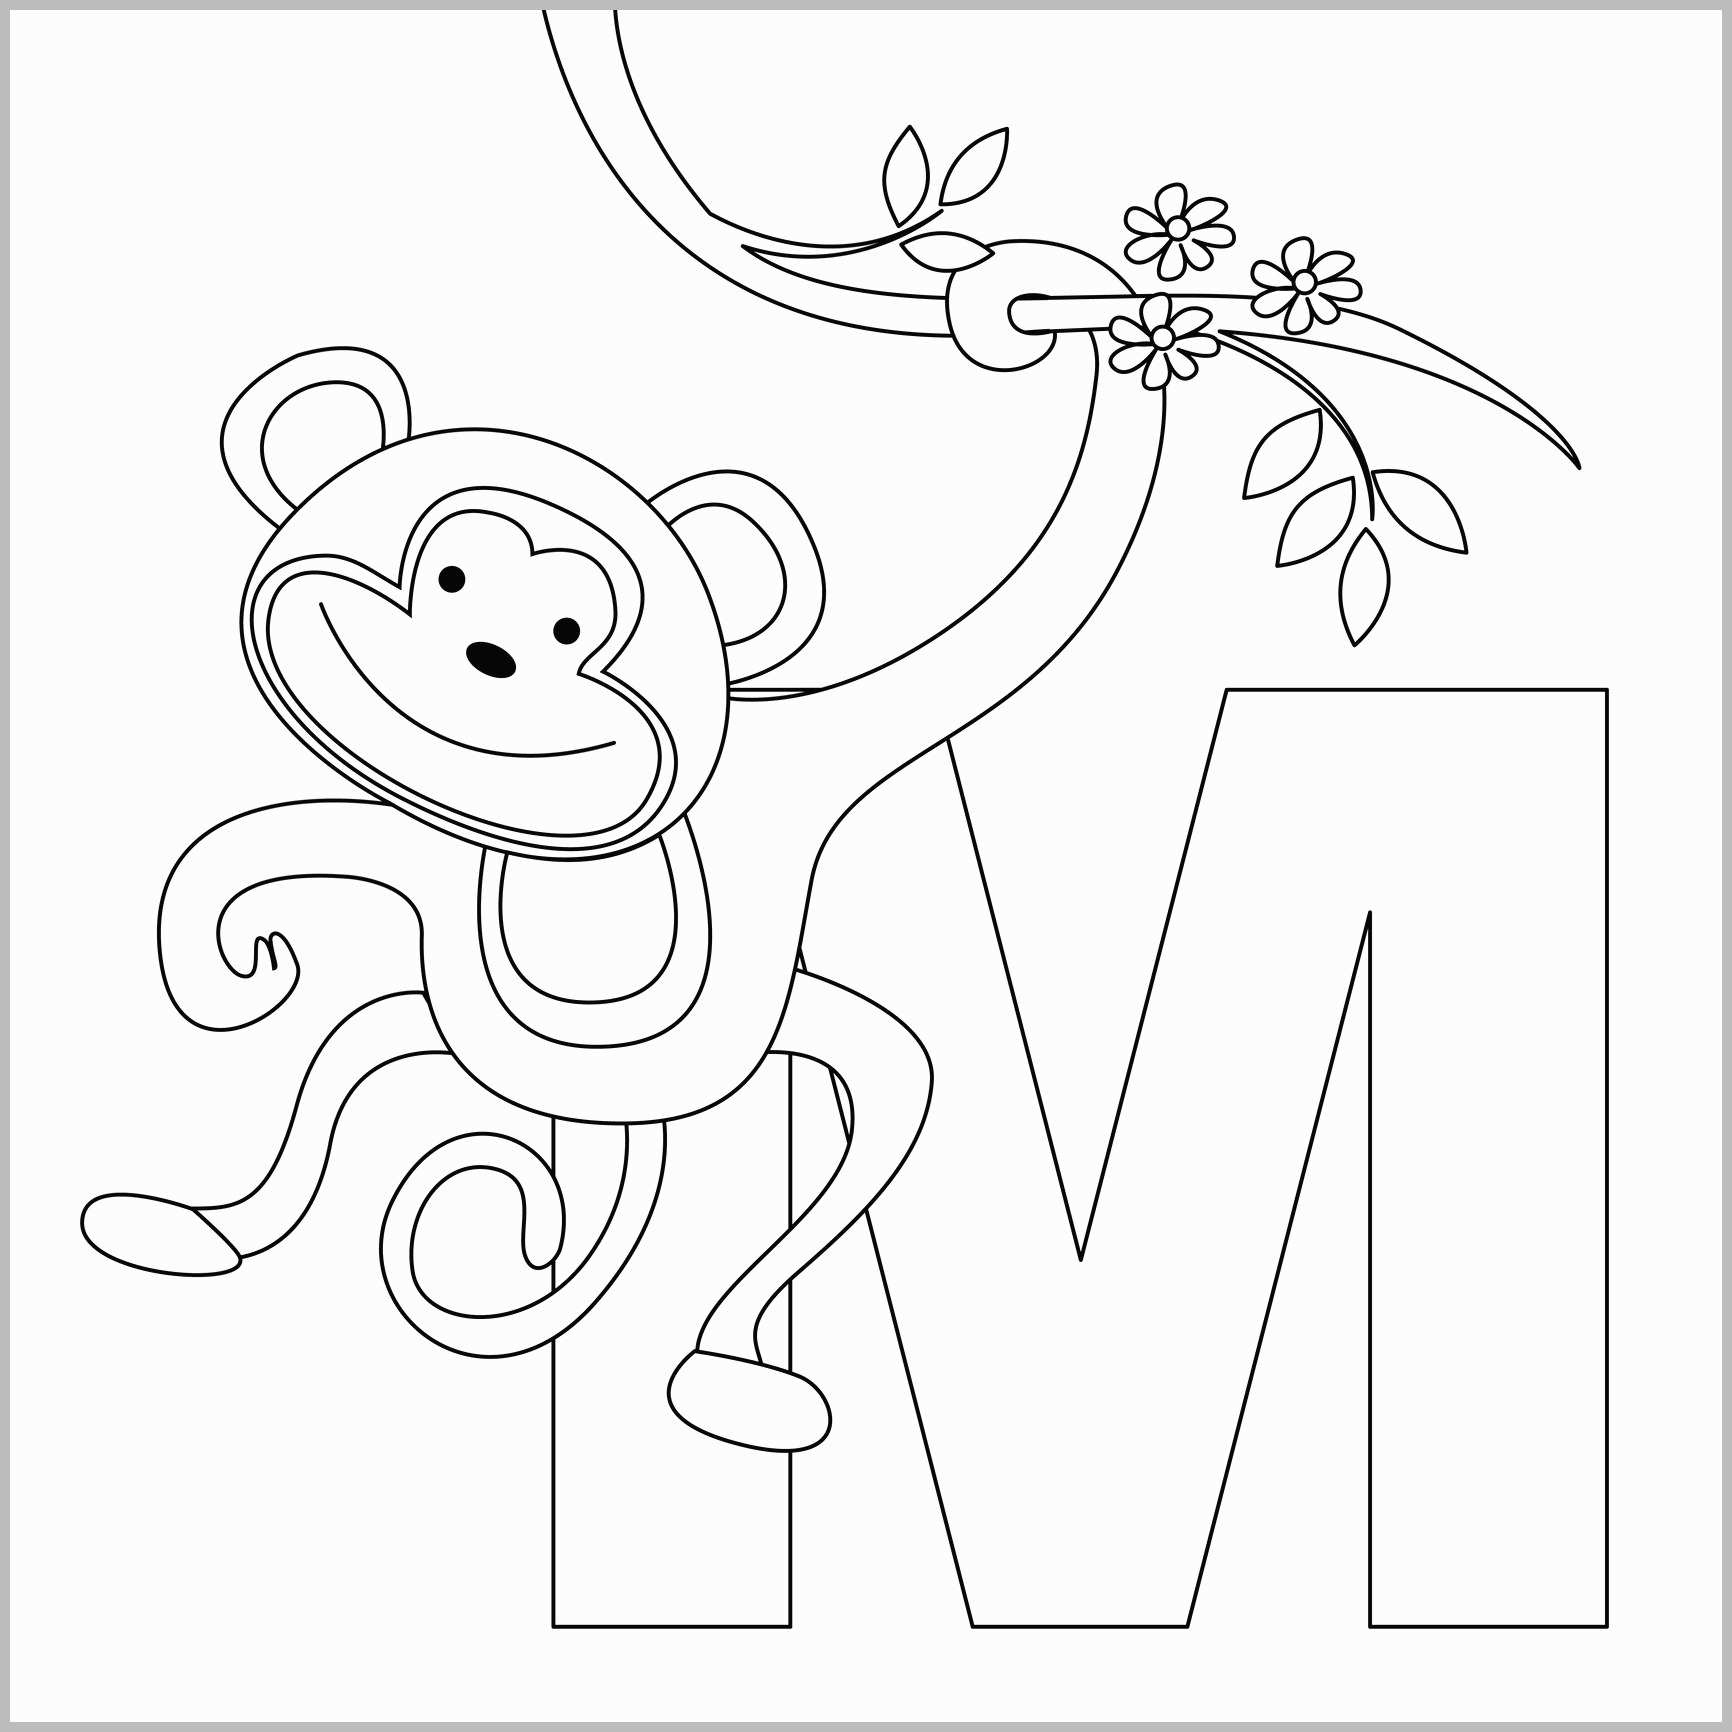 Coloring Ideas : Excelent Coloring Book Alphabettters Admirably - Free Printable Animal Alphabet Letters